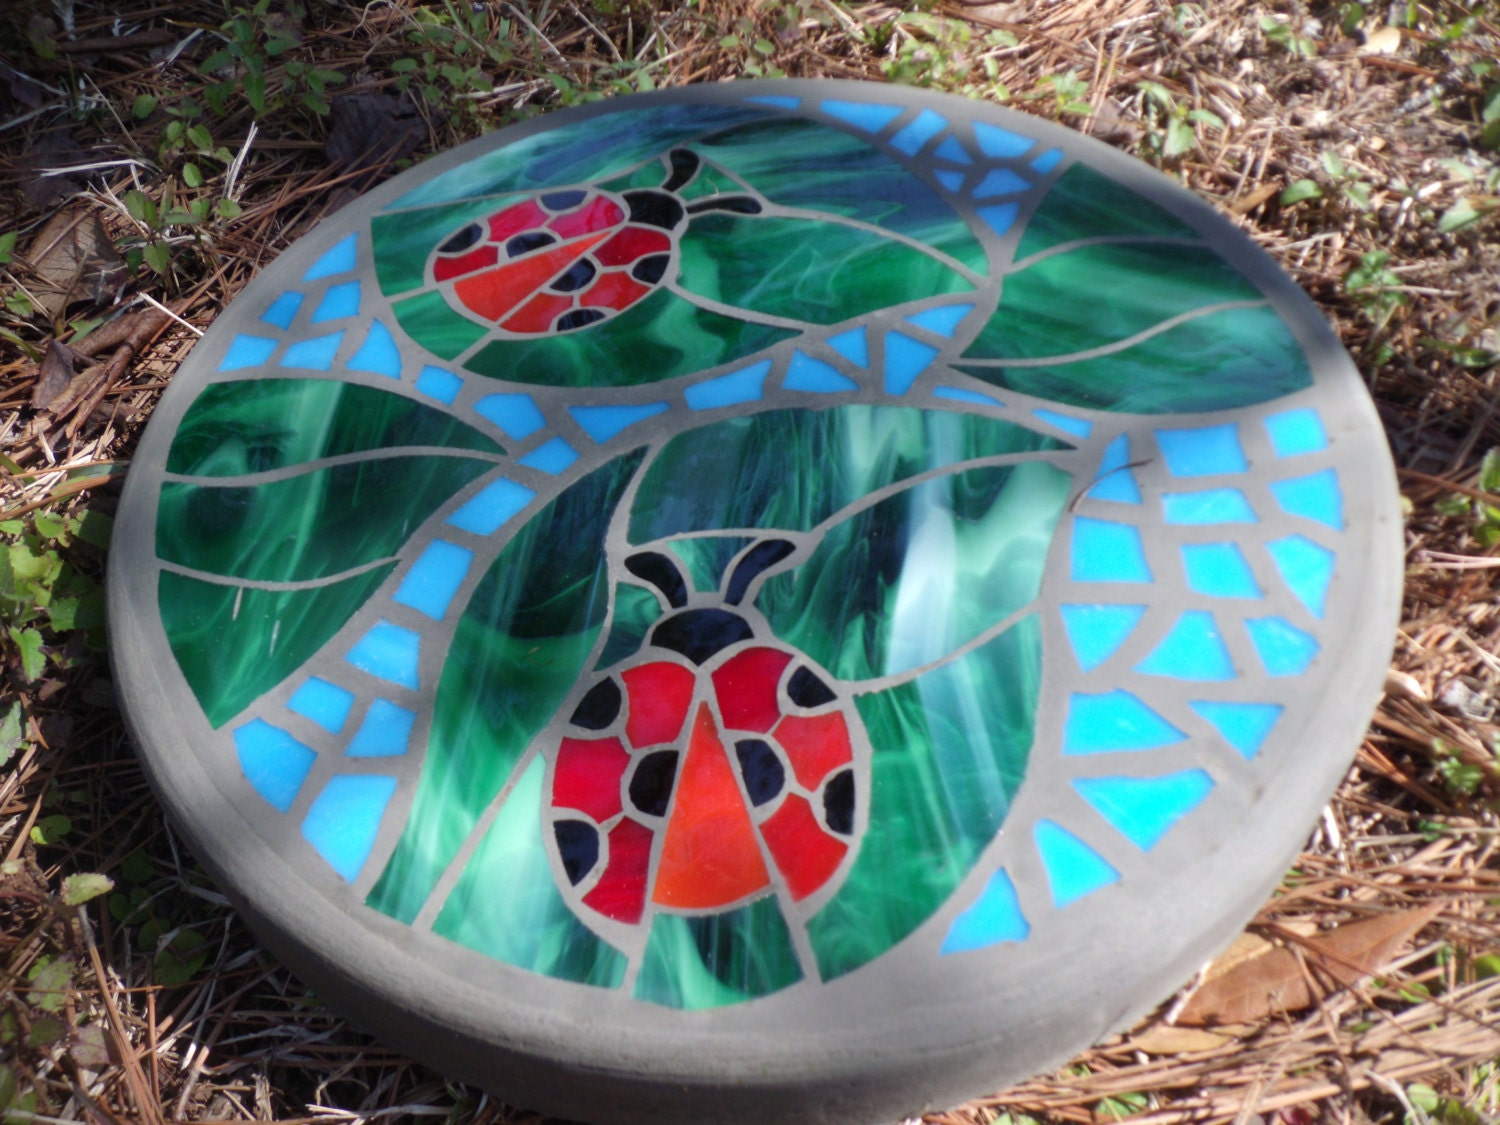 Mosaic Stone Cement : Ladybug friends handmade stained glass and concrete mosaic